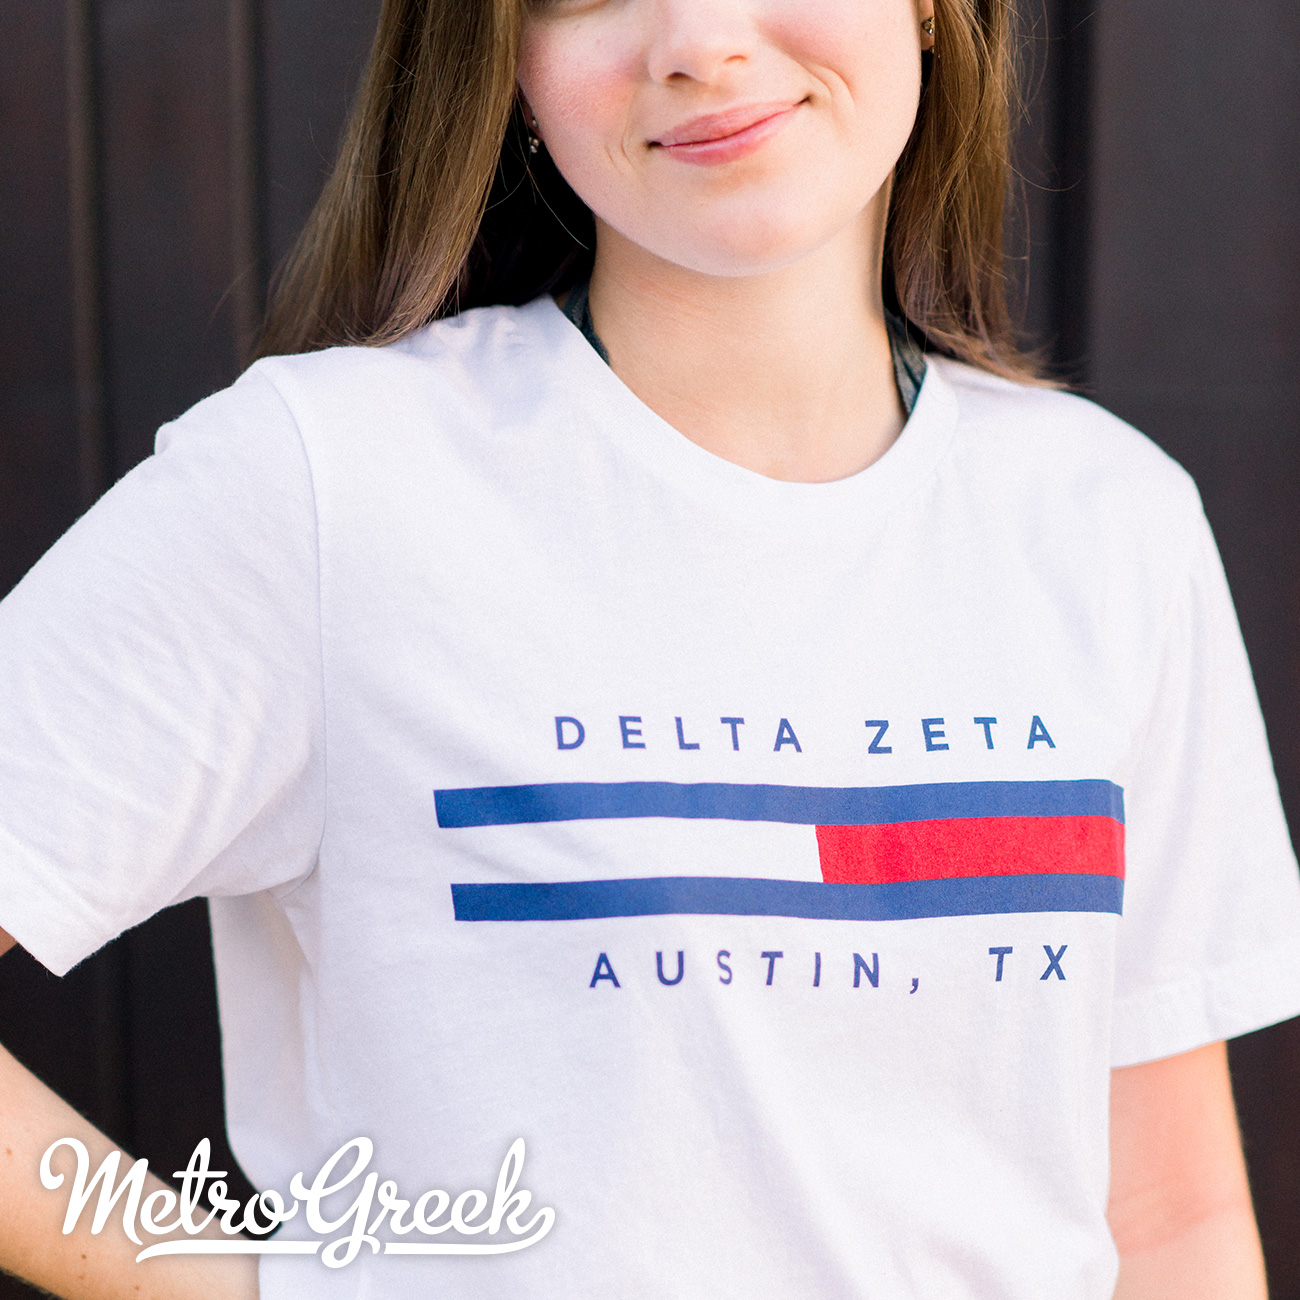 Delta Zeta Sisterhood Shirts